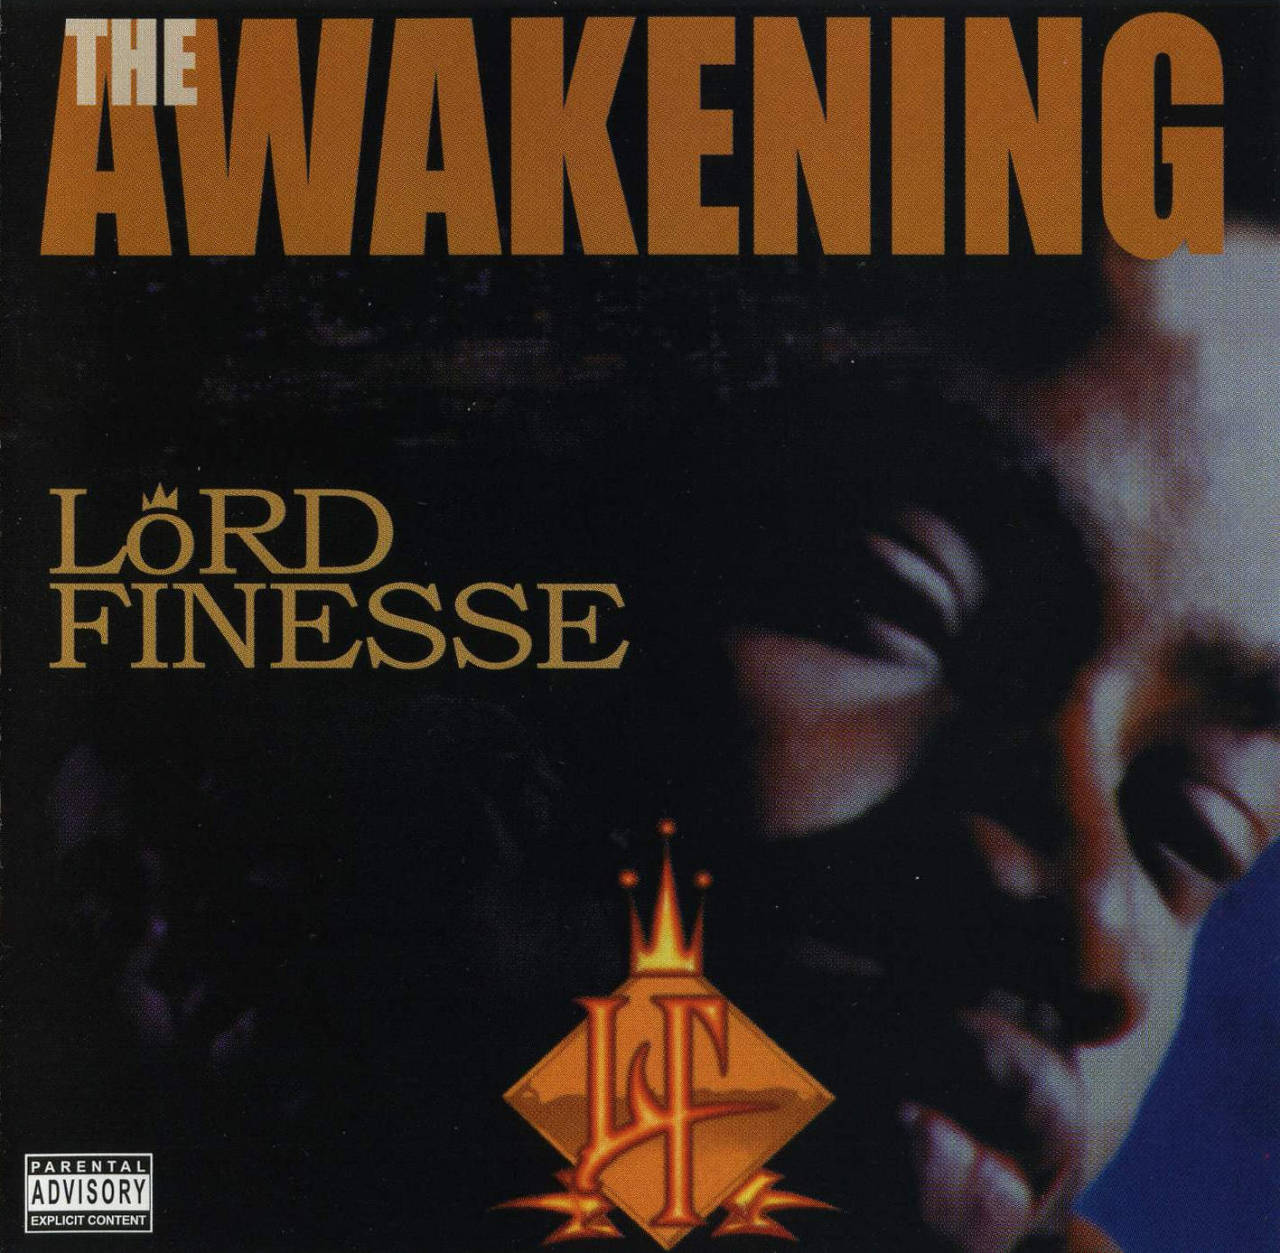 BACK IN THE DAY |2/20/96| Lord Finesse released his third album, The Awakening, on Penalty Records.